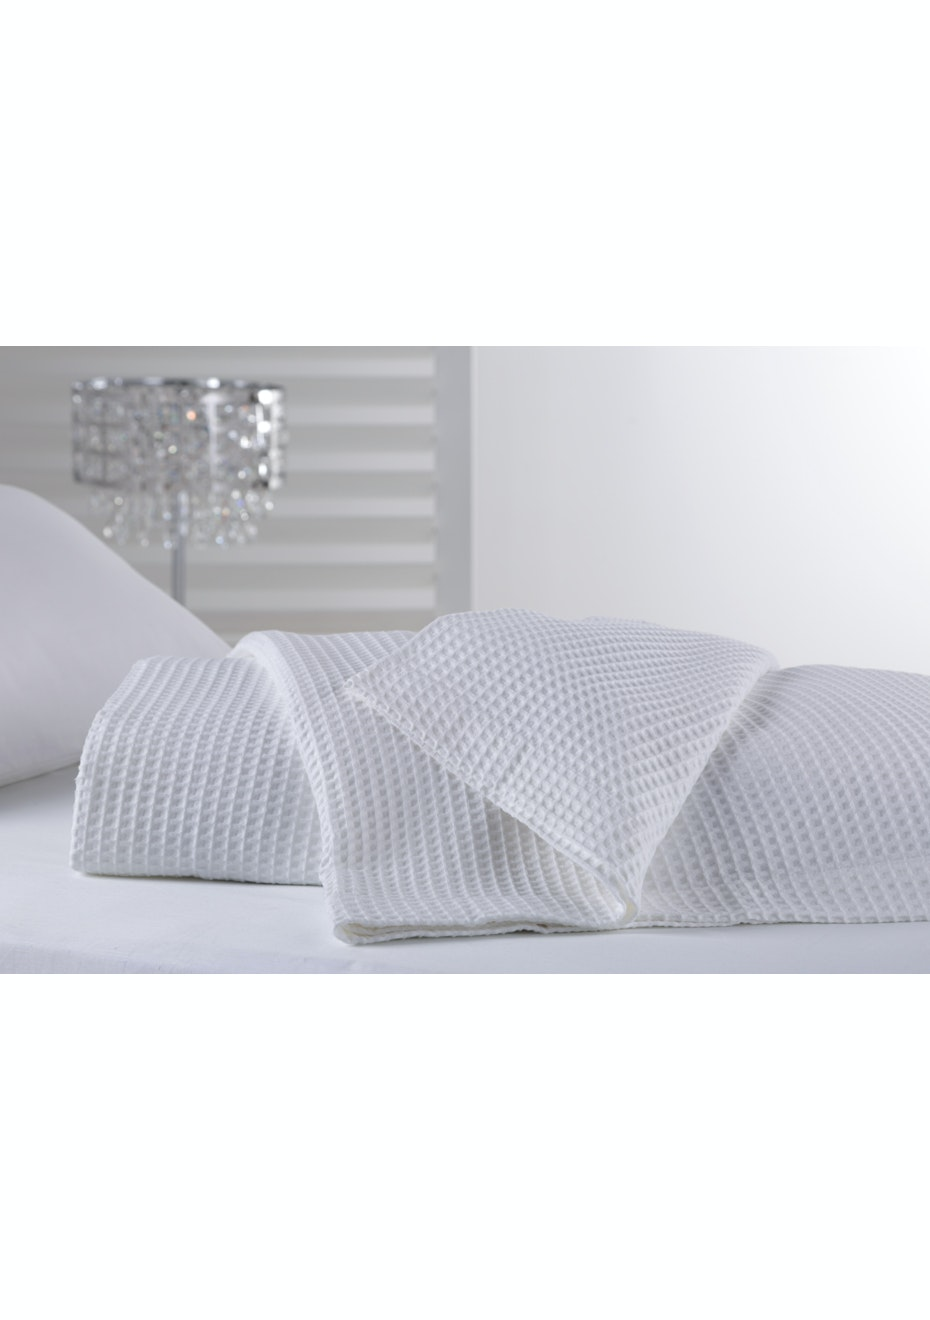 Regatta Cotton Blanket - White - Queen Bed